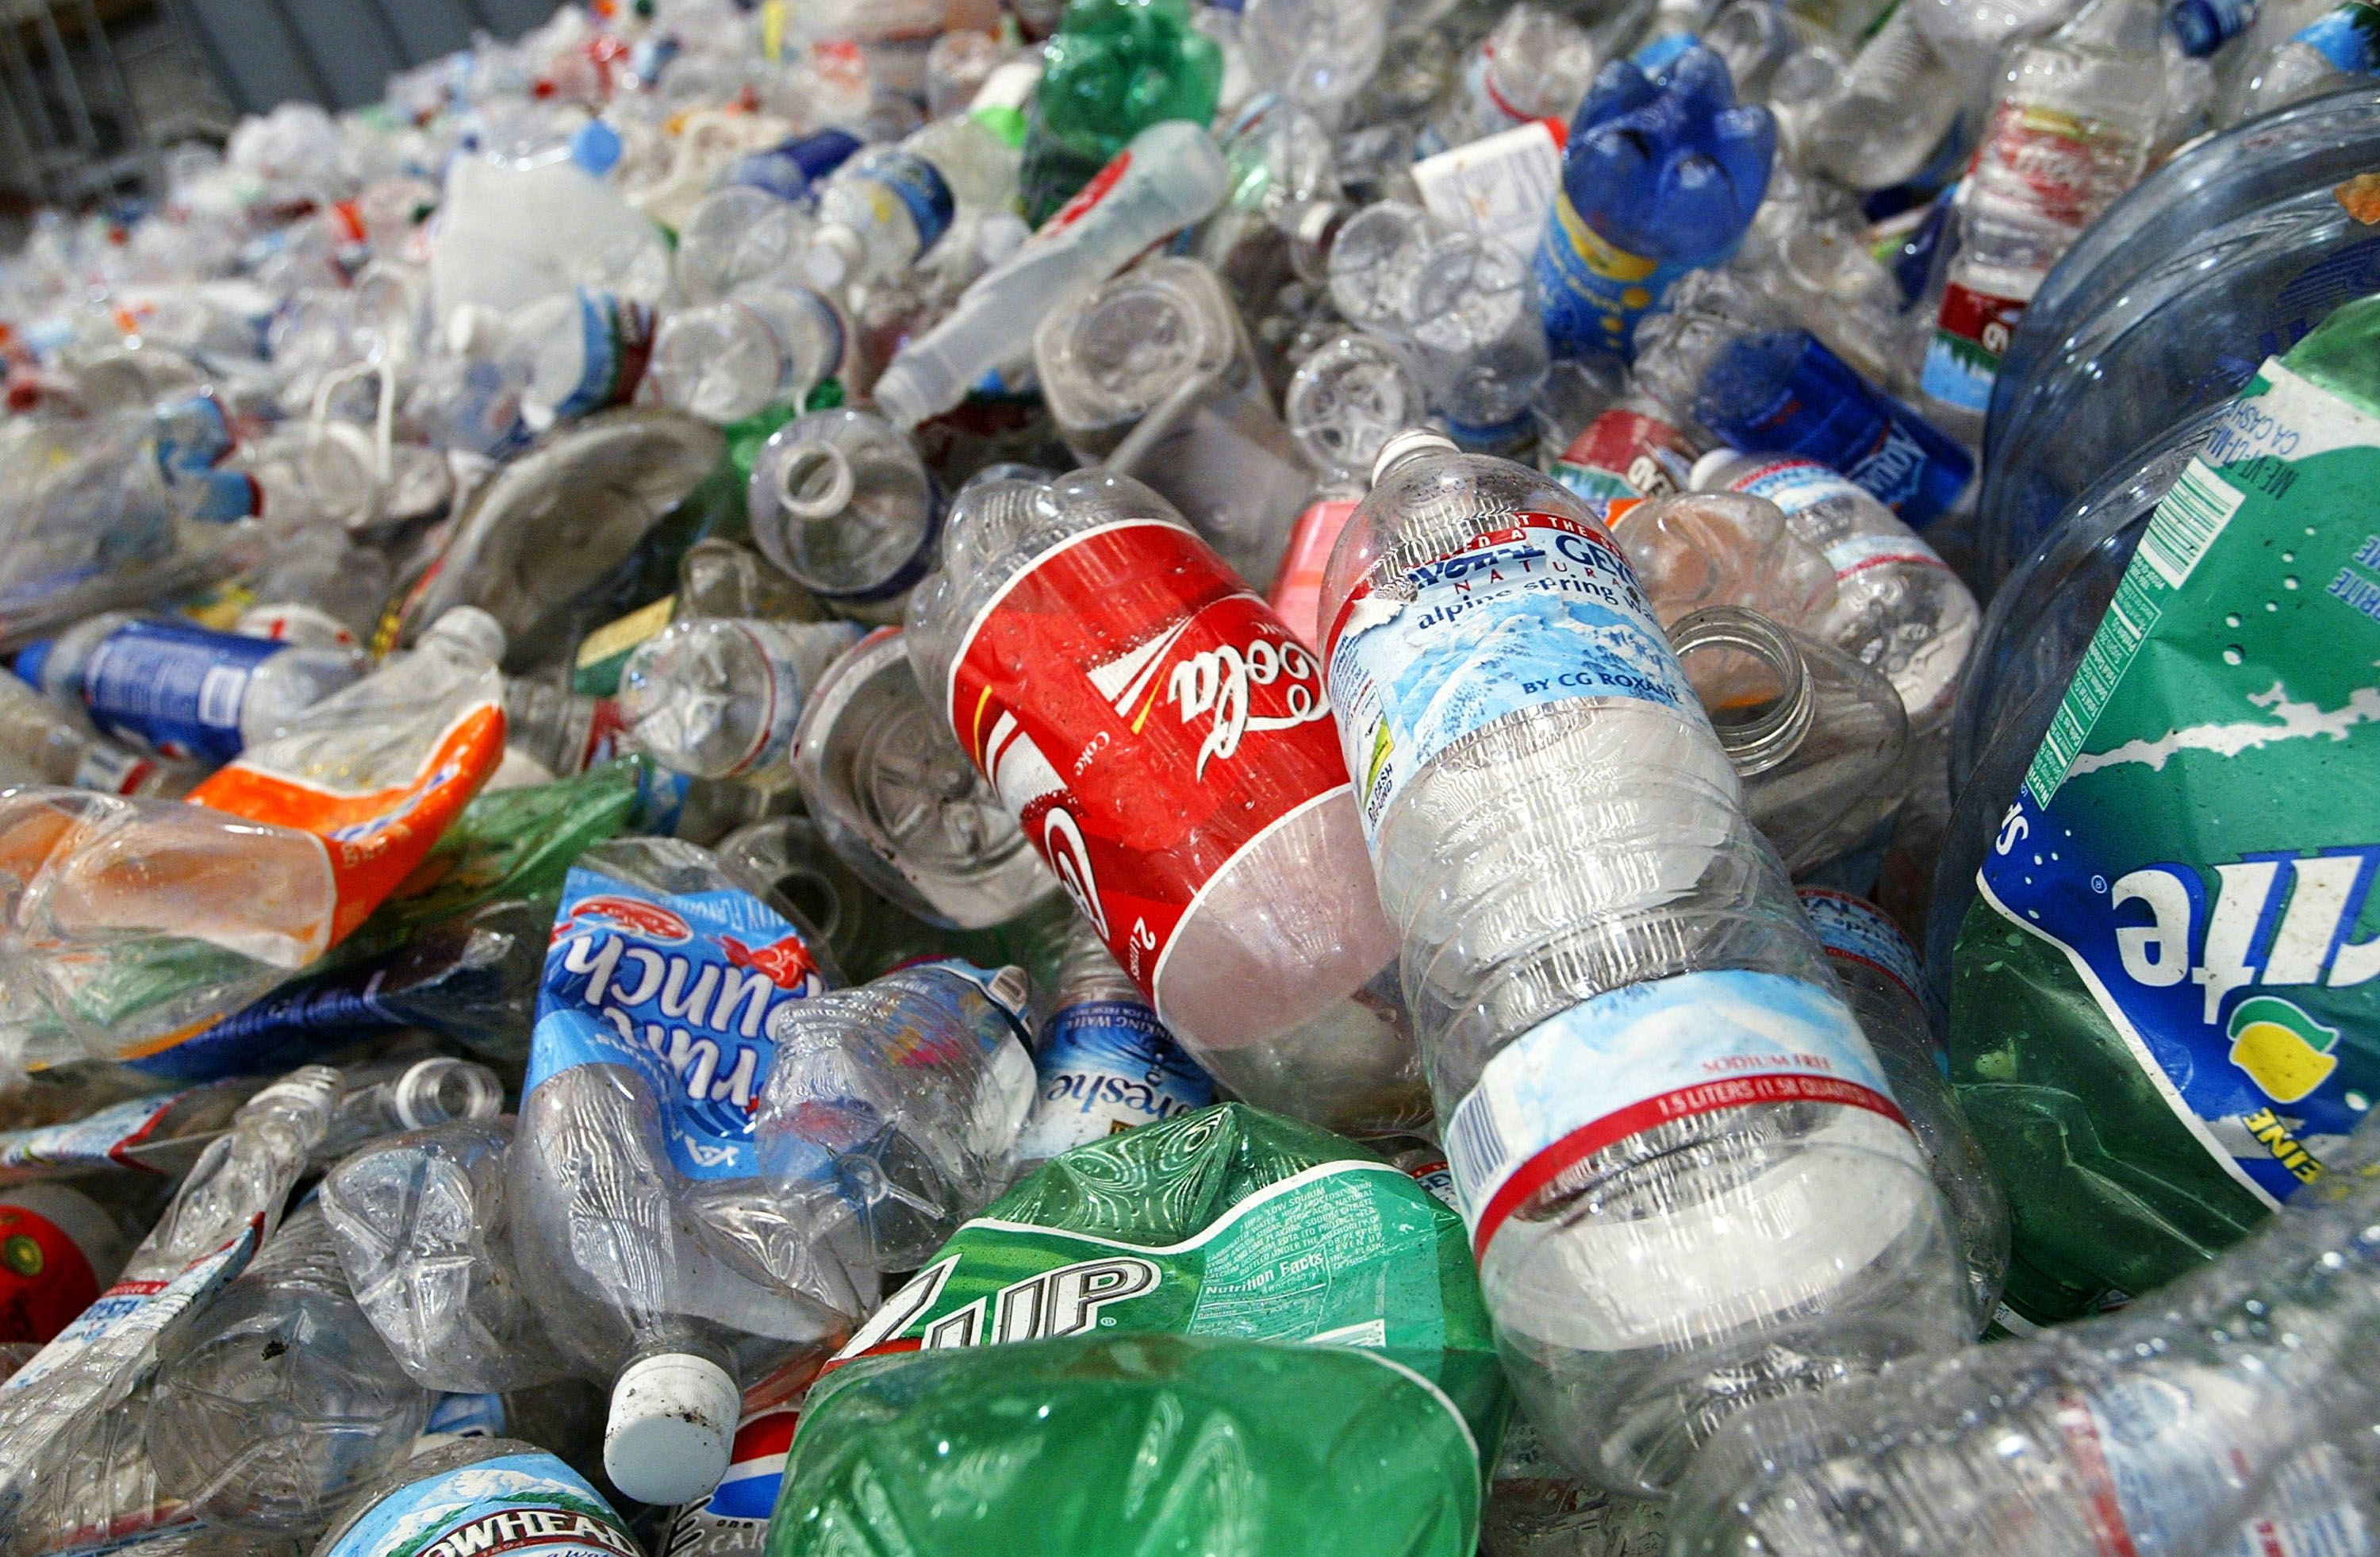 Researchers Accidentally Find Enzyme to Break Down Plastic